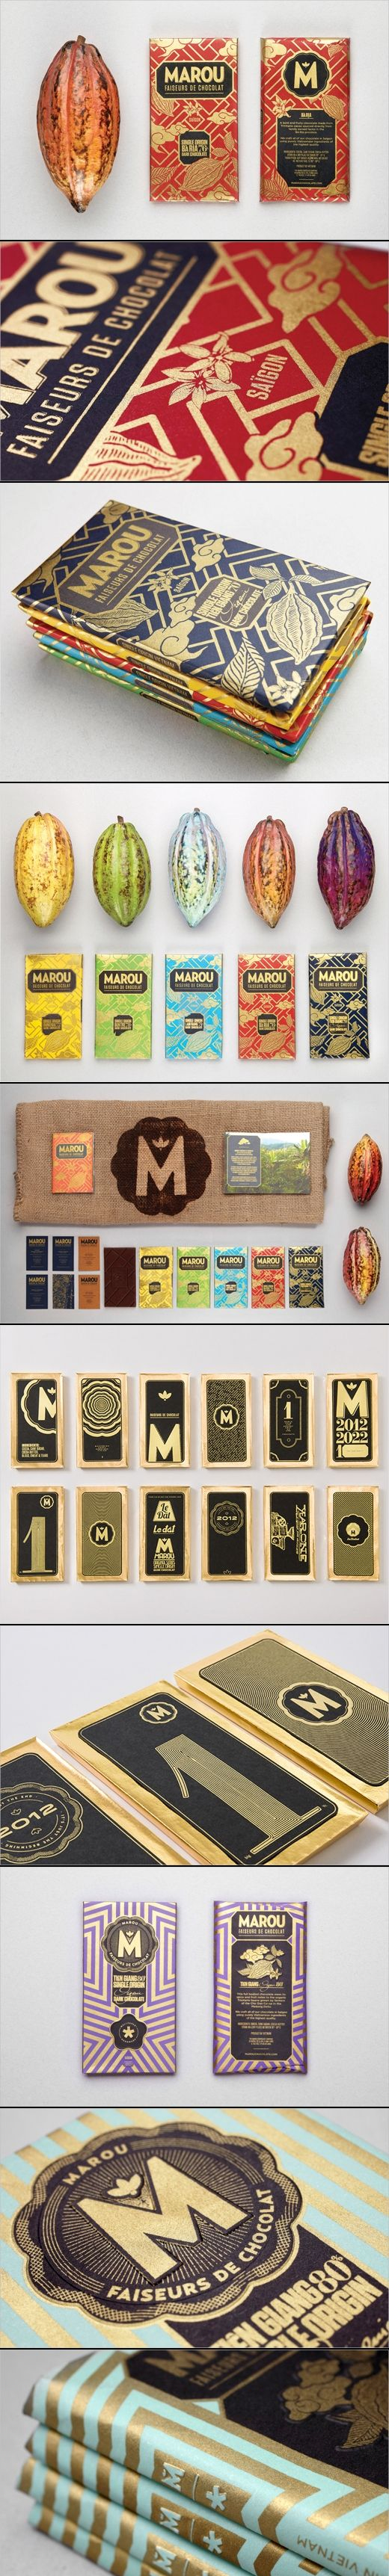 Marou Faiseurs de Chocolat /Rice Creative. oooh all this #chocolate #packaging design